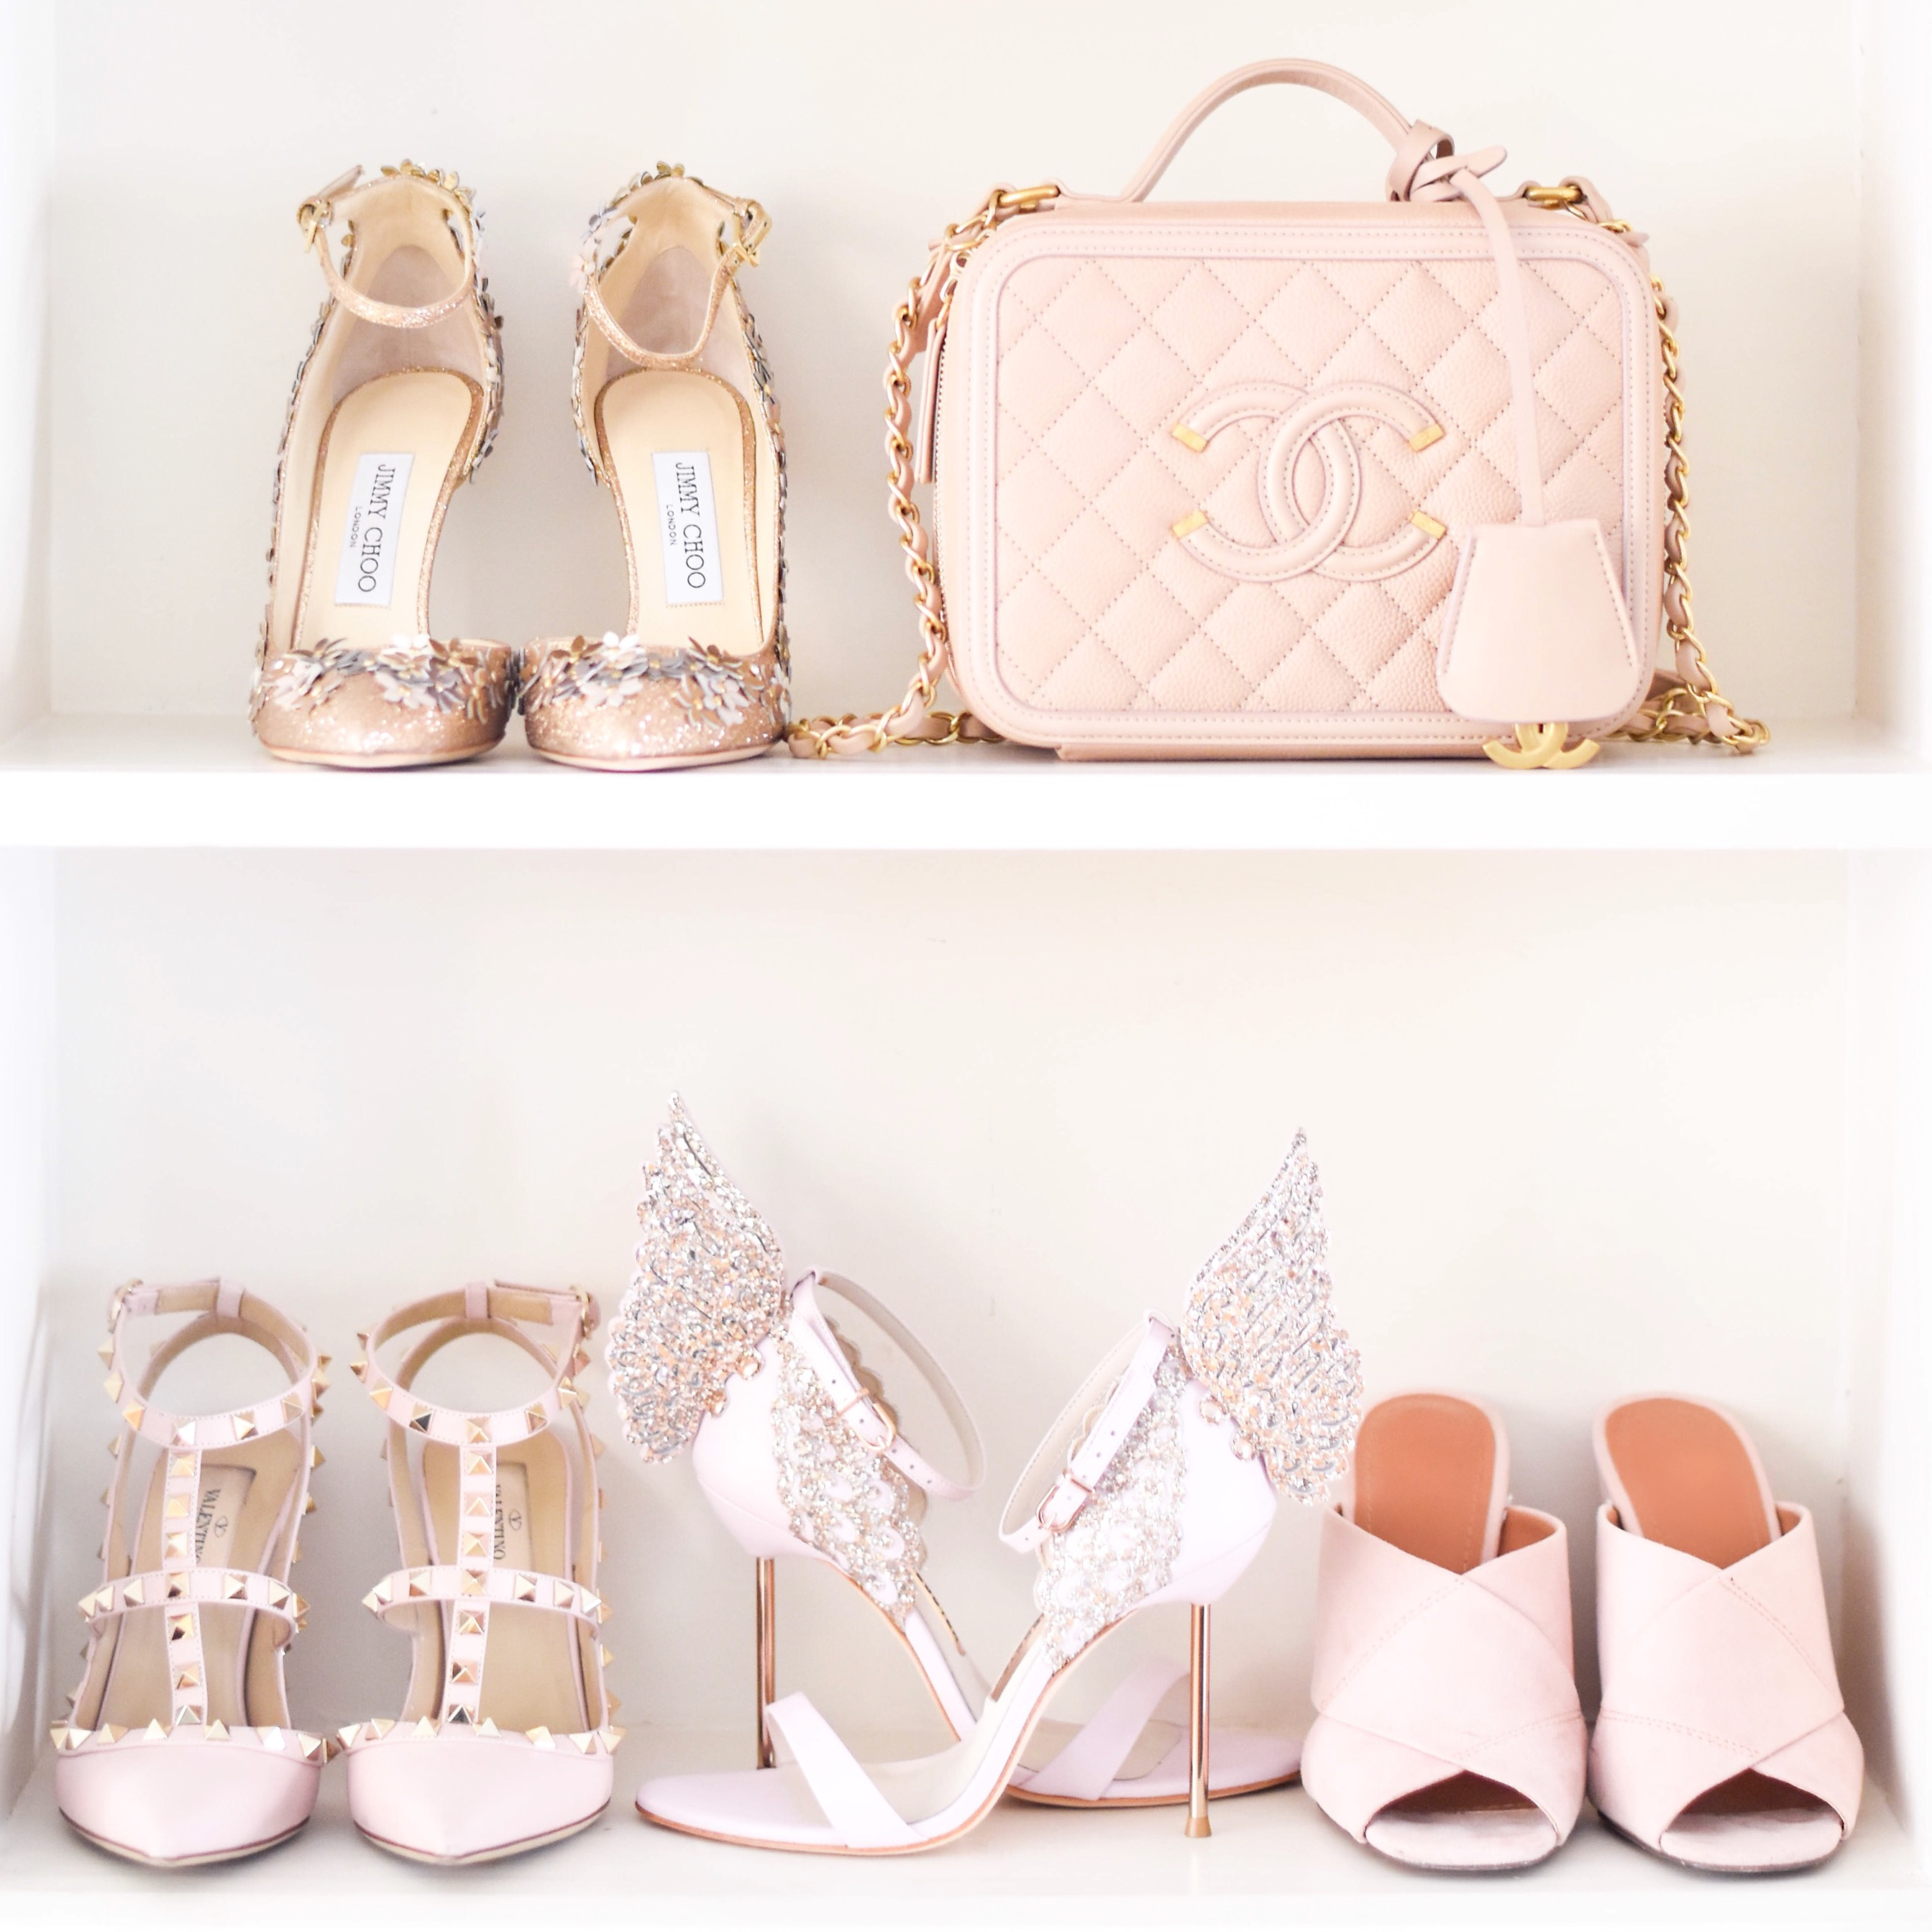 120c63d83254 Chanel Bag And Heels | MURPHY'S LAW